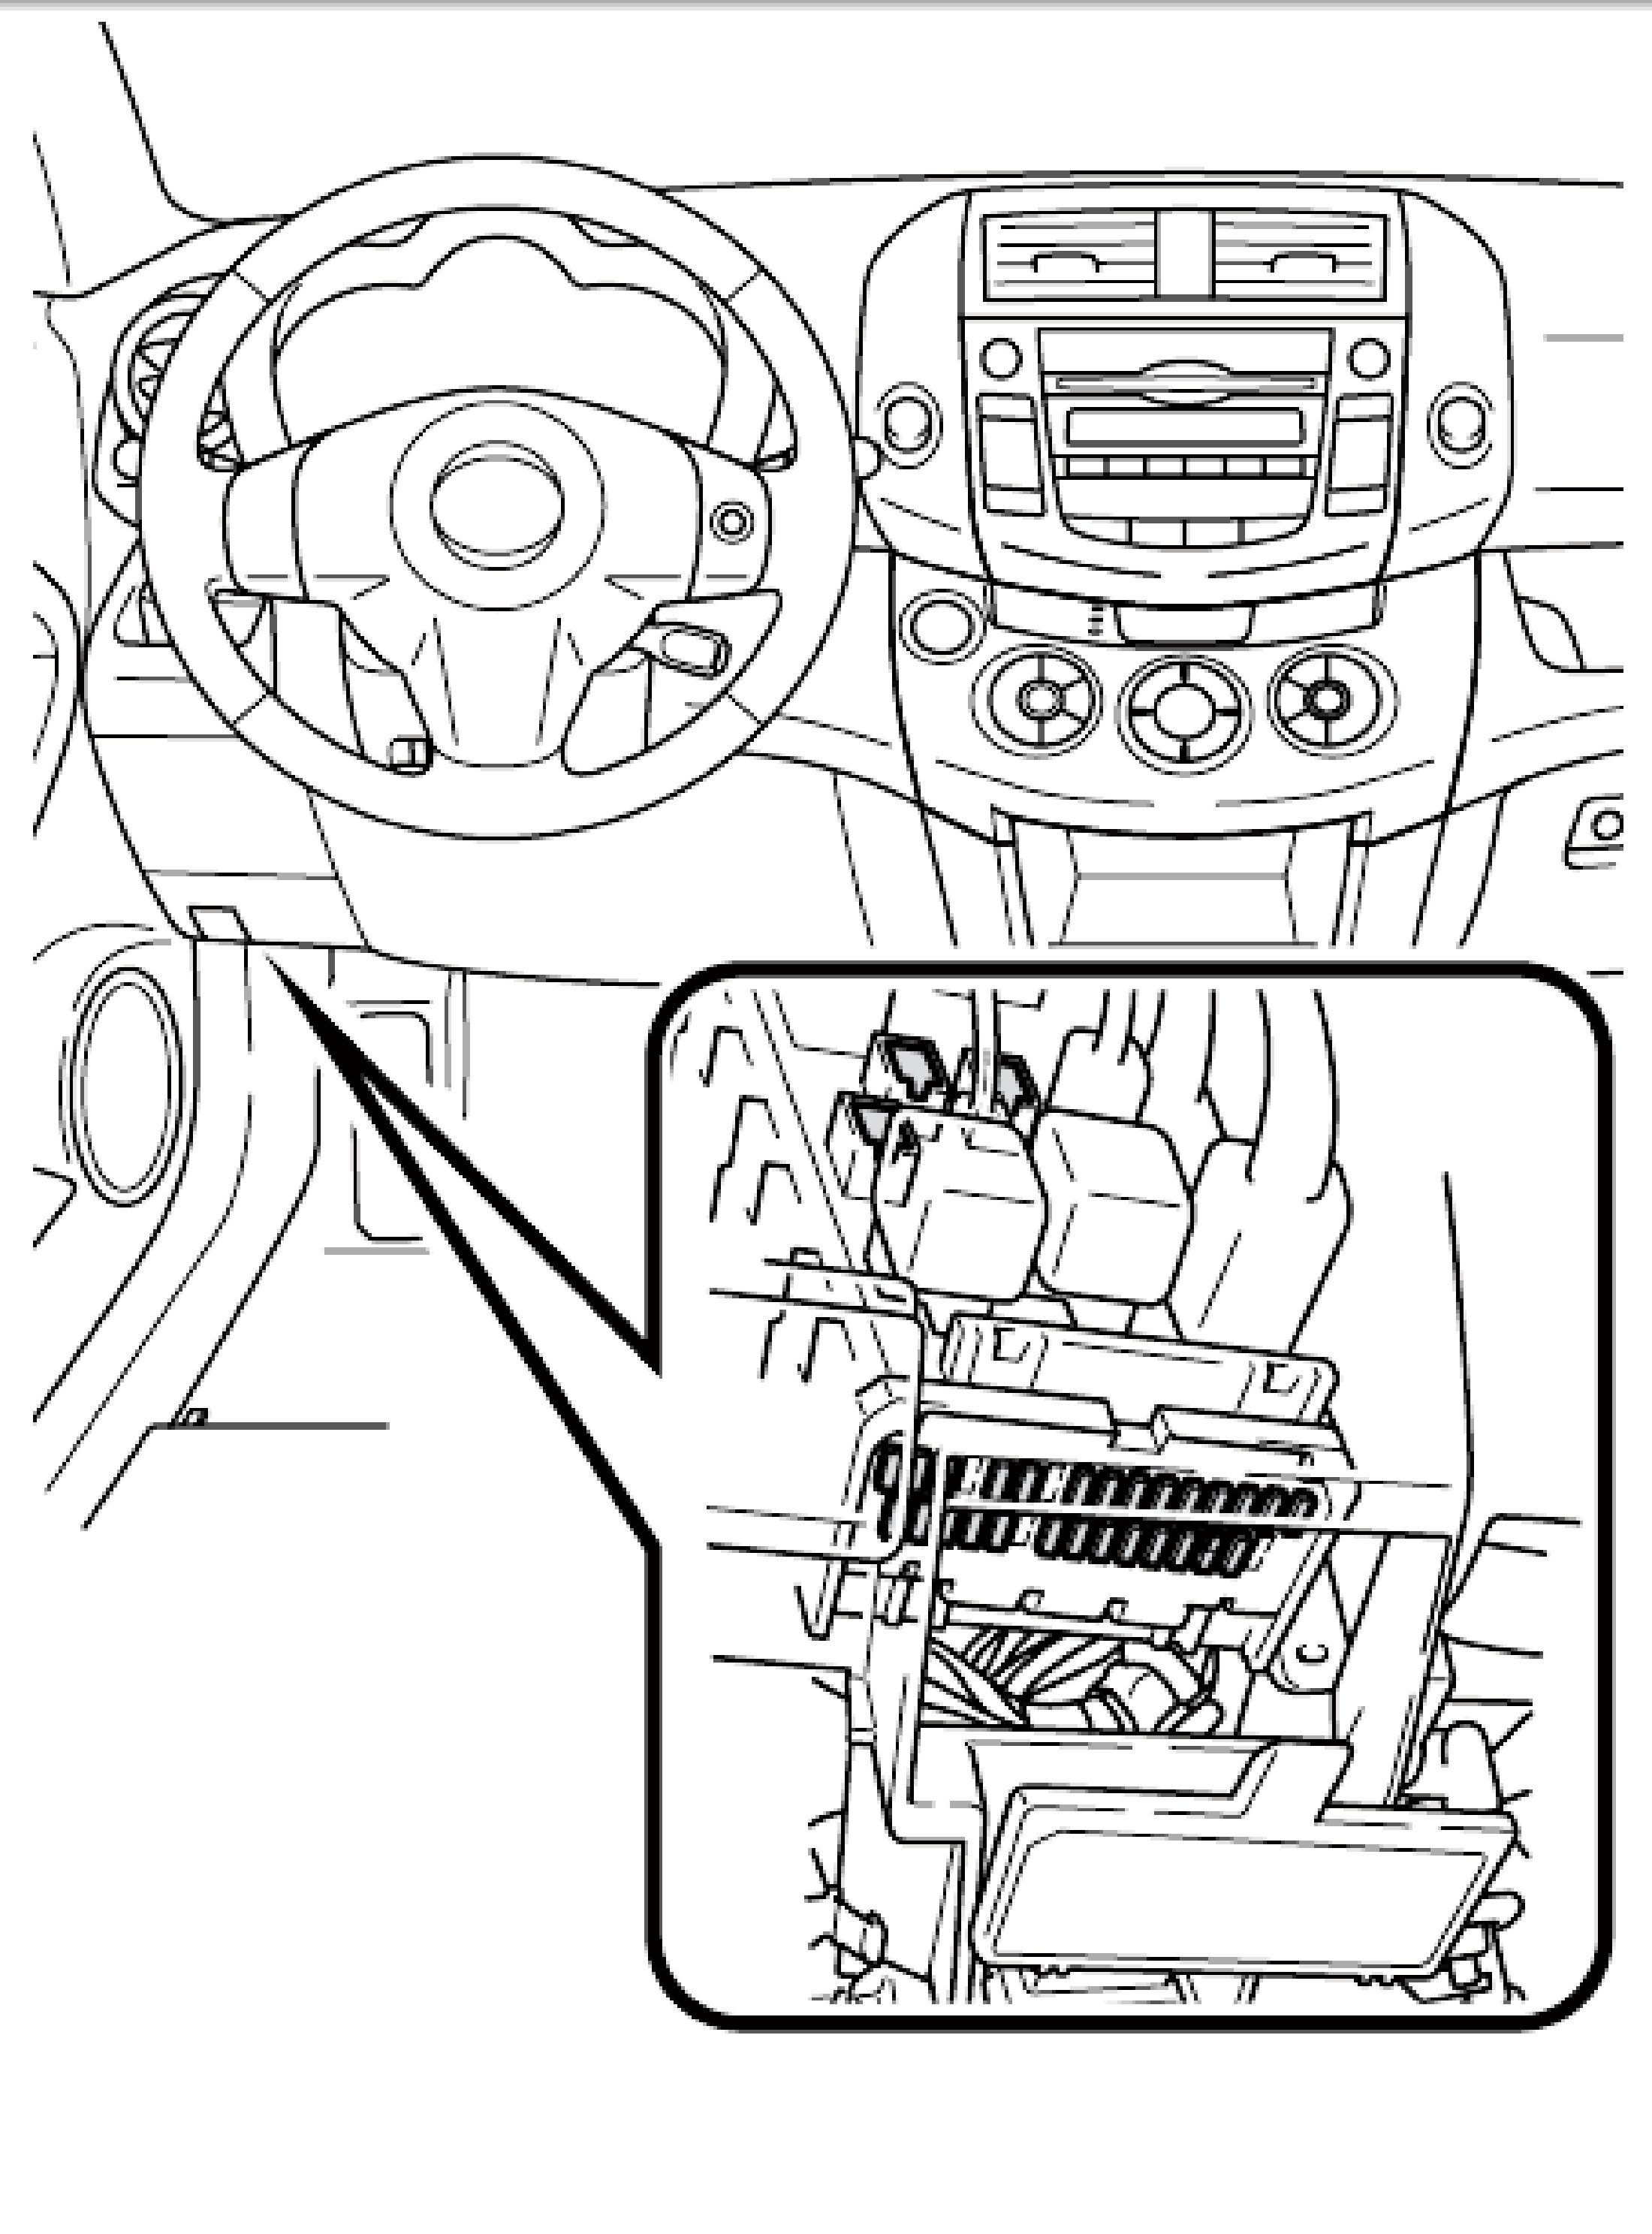 2013 Rav4 Wiring Diagram Library 2001 Fuse Box Toyota Location Gckedba 1998 Diagrams